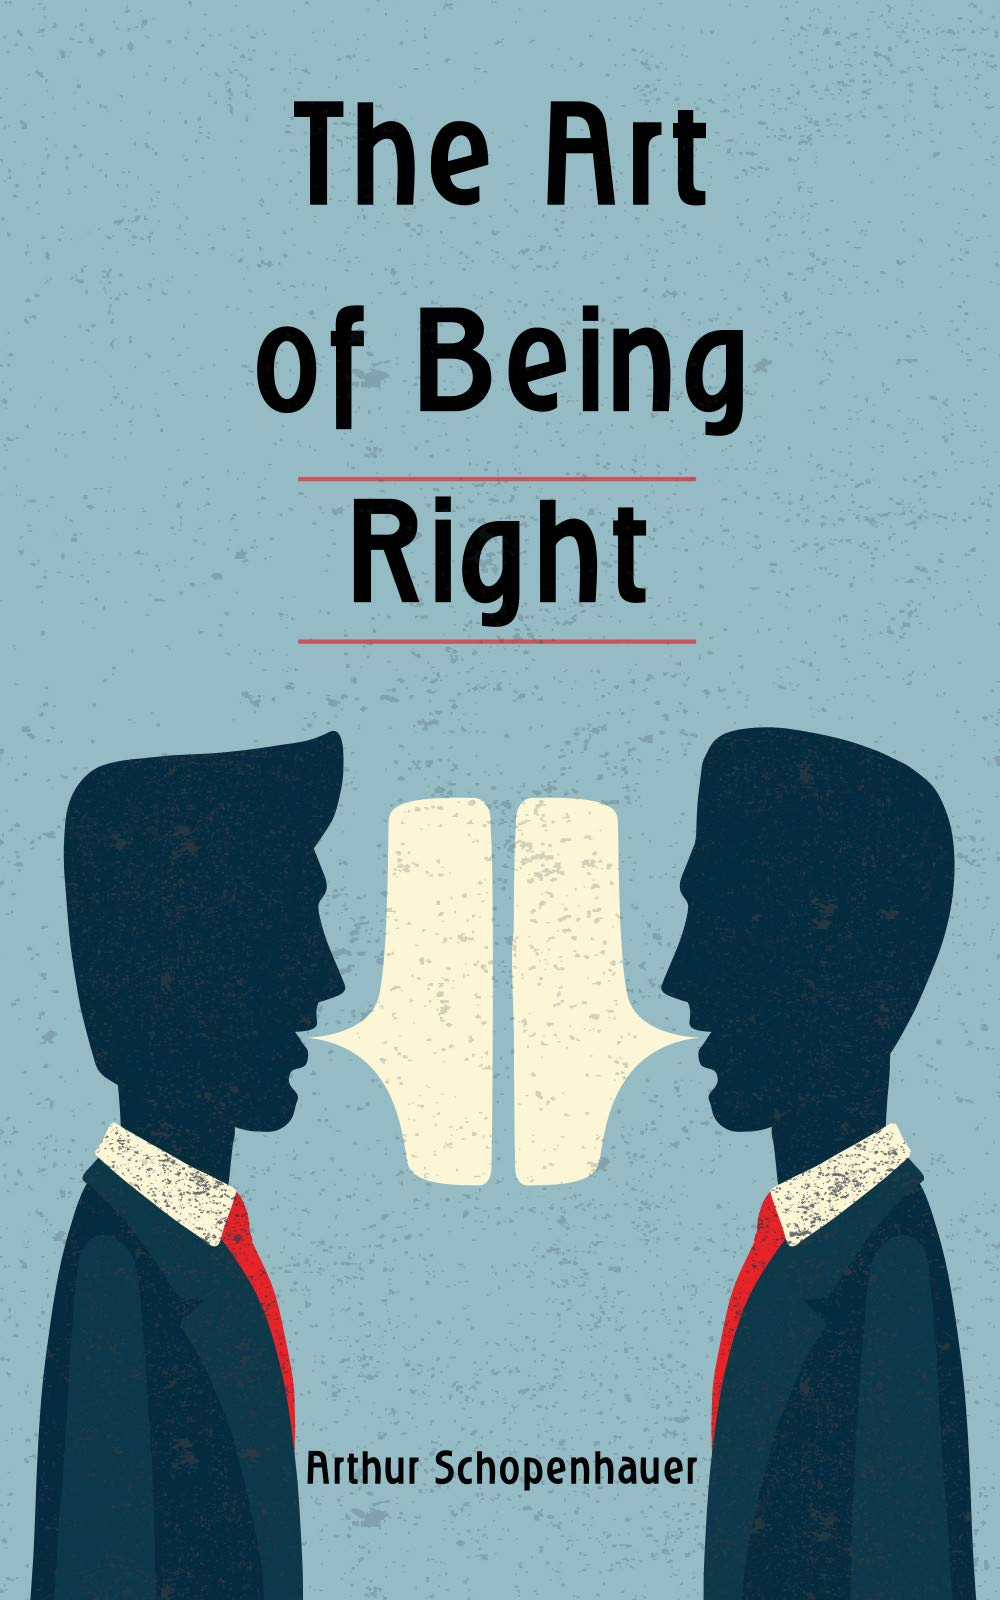 The Art of Being Right: How to speak in public, argue and convince even using logical fallacies. Win all your debates! (Annotated)